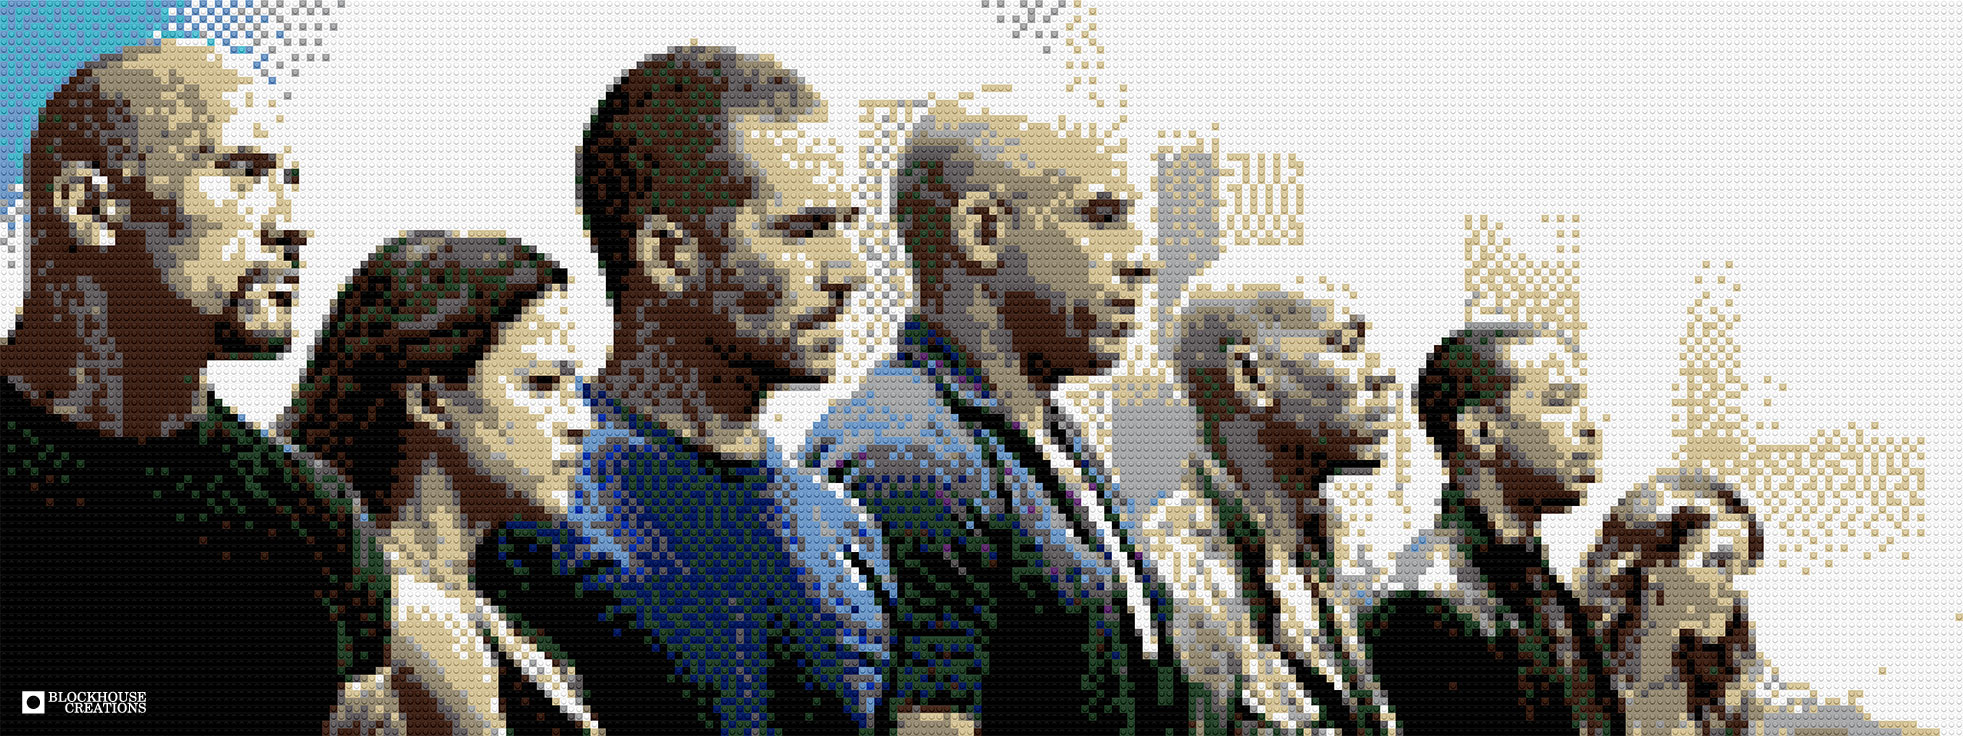 100 Days of Mosaics – Day 74 – Furious 7